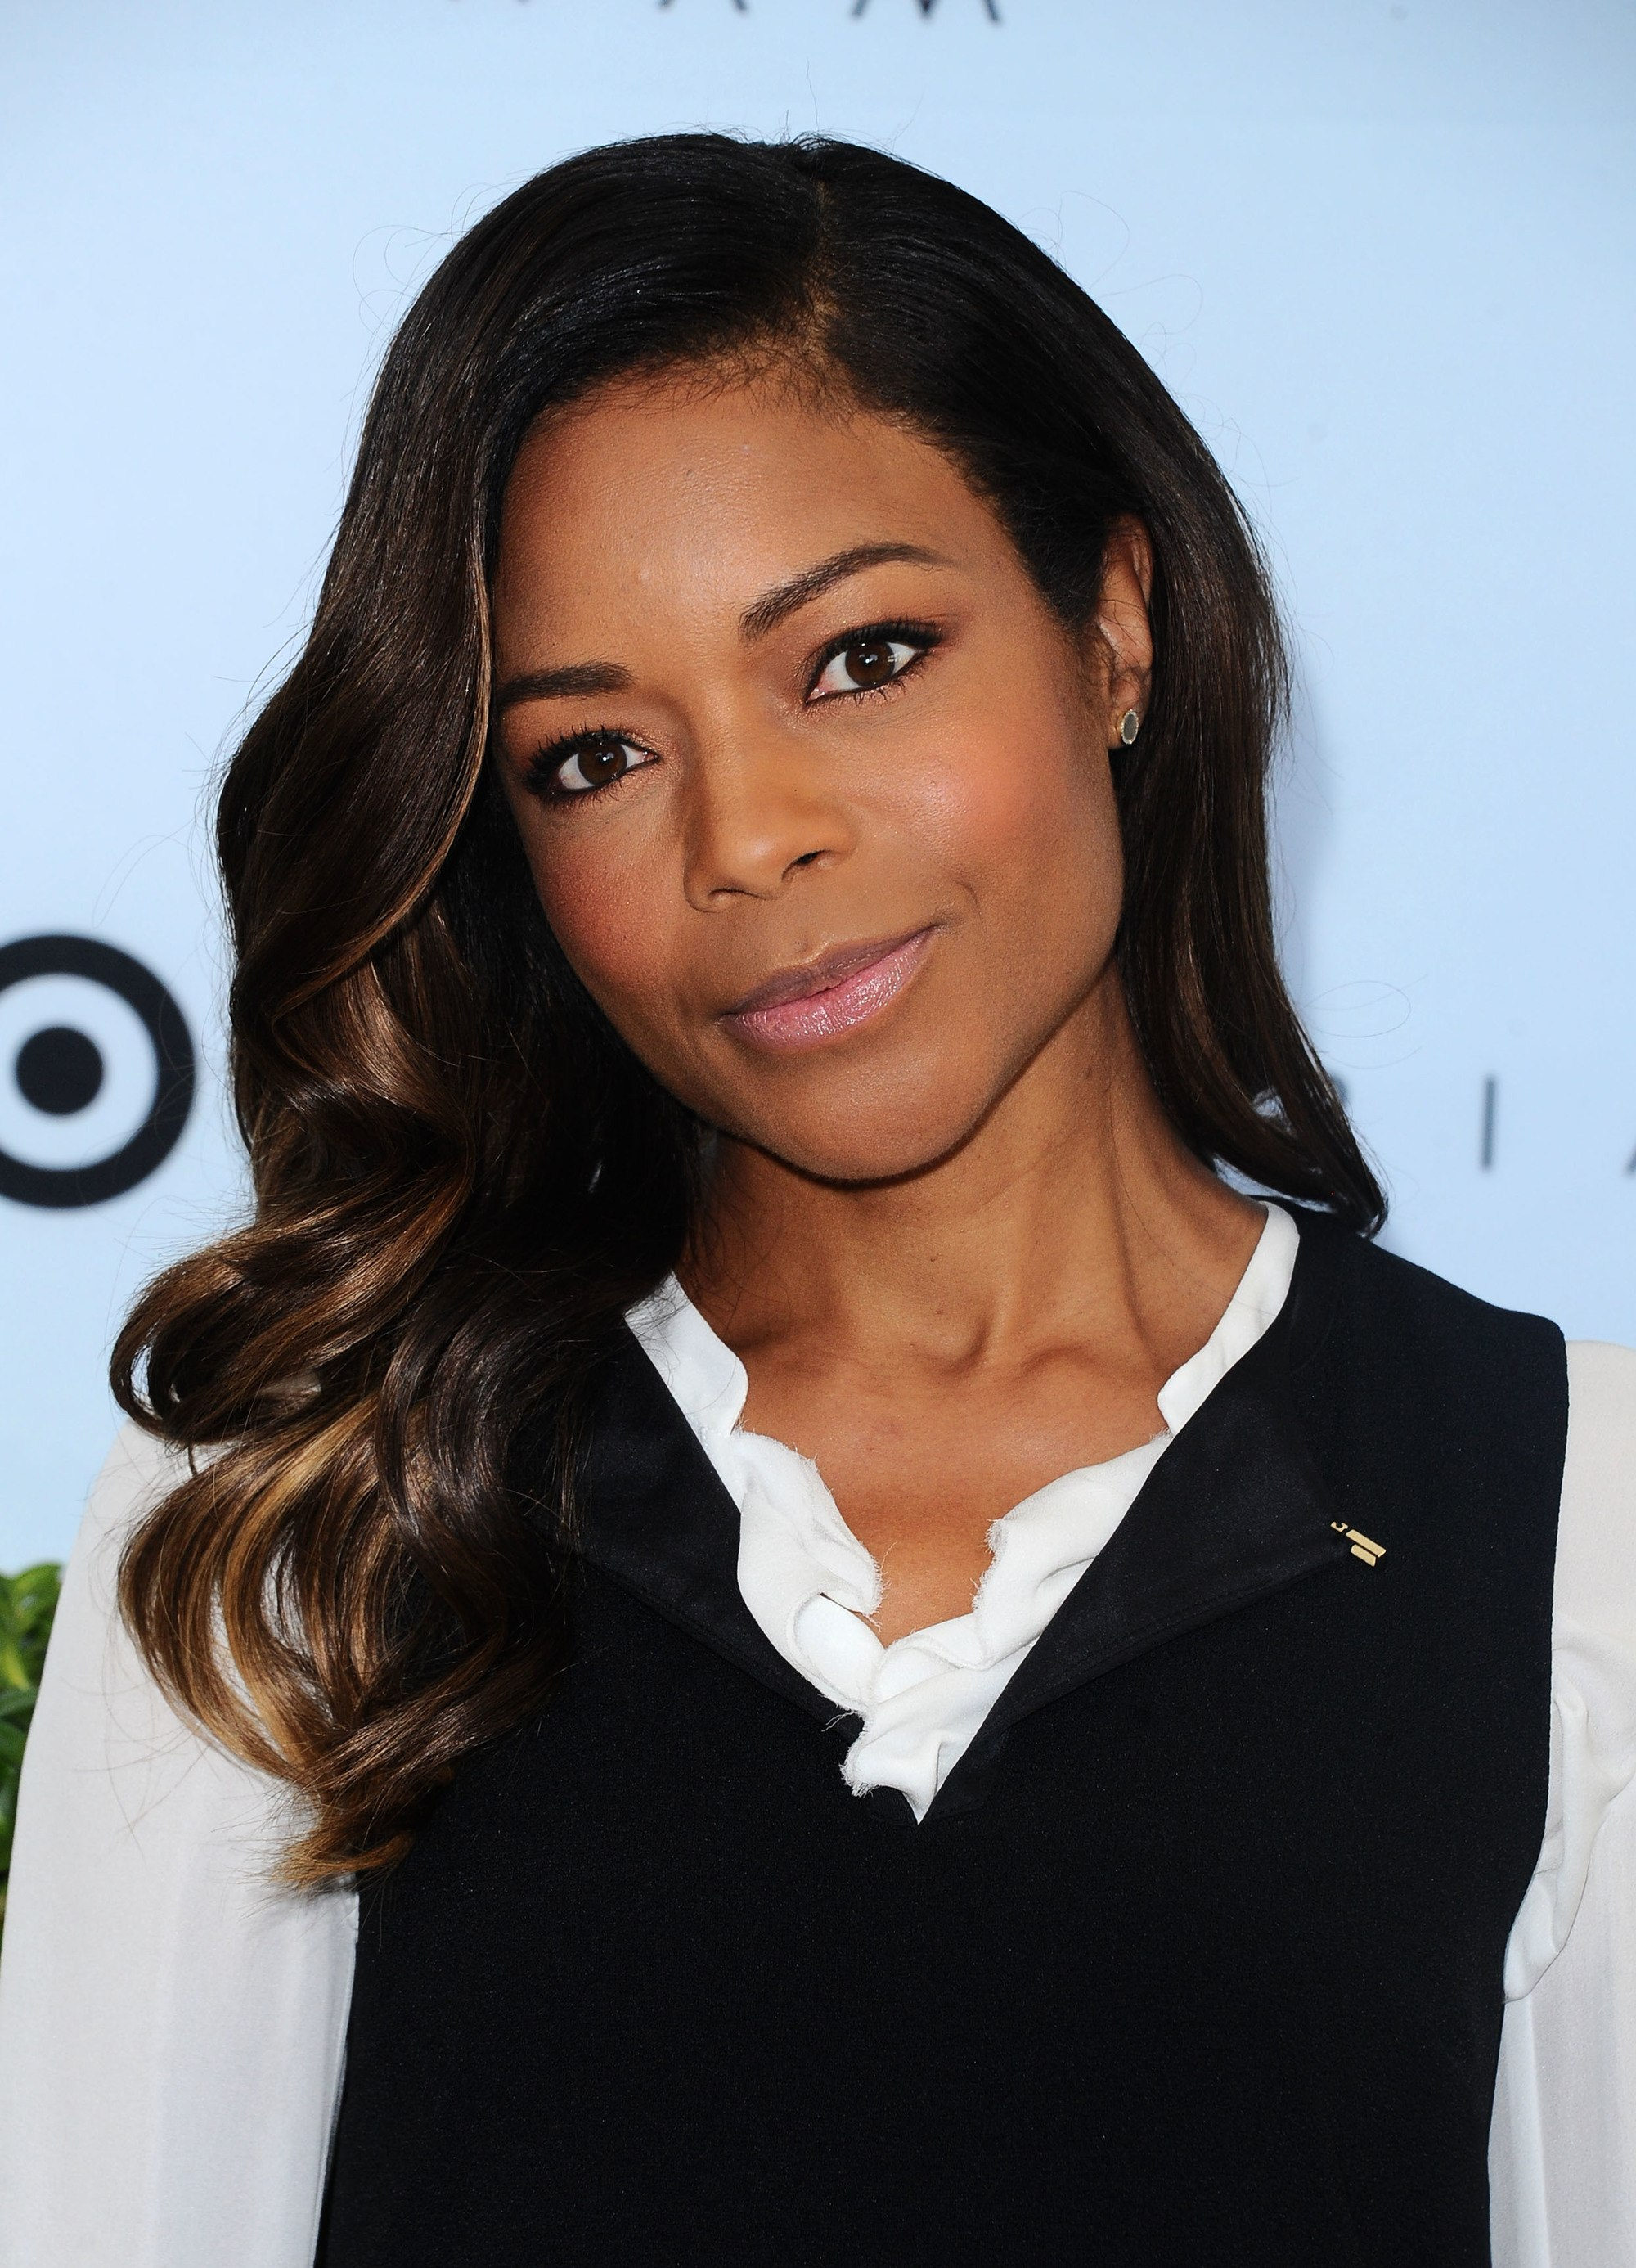 naomie harris with chocolate brown hair colour hairstyle to the side at victoria beckham event